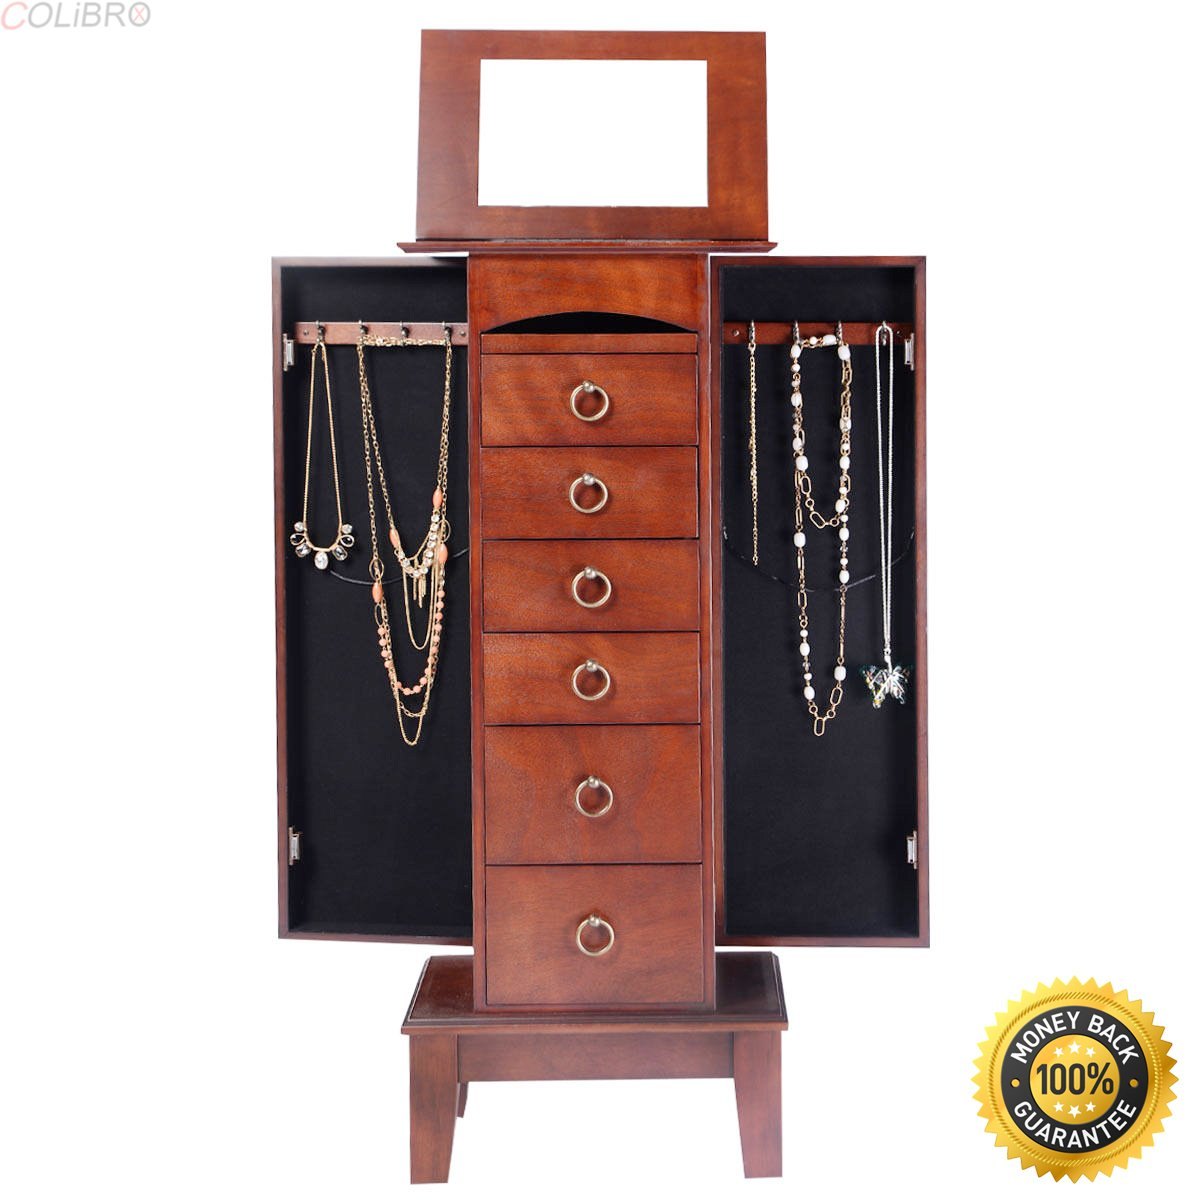 COLIBROX--Wood Jewelry Cabinet Armoire Storage Box Chest Stand Organizer Christmas Gift,jewelry box for necklaces,jewelry gift box,target jewelry gift box,jewellery box kmart